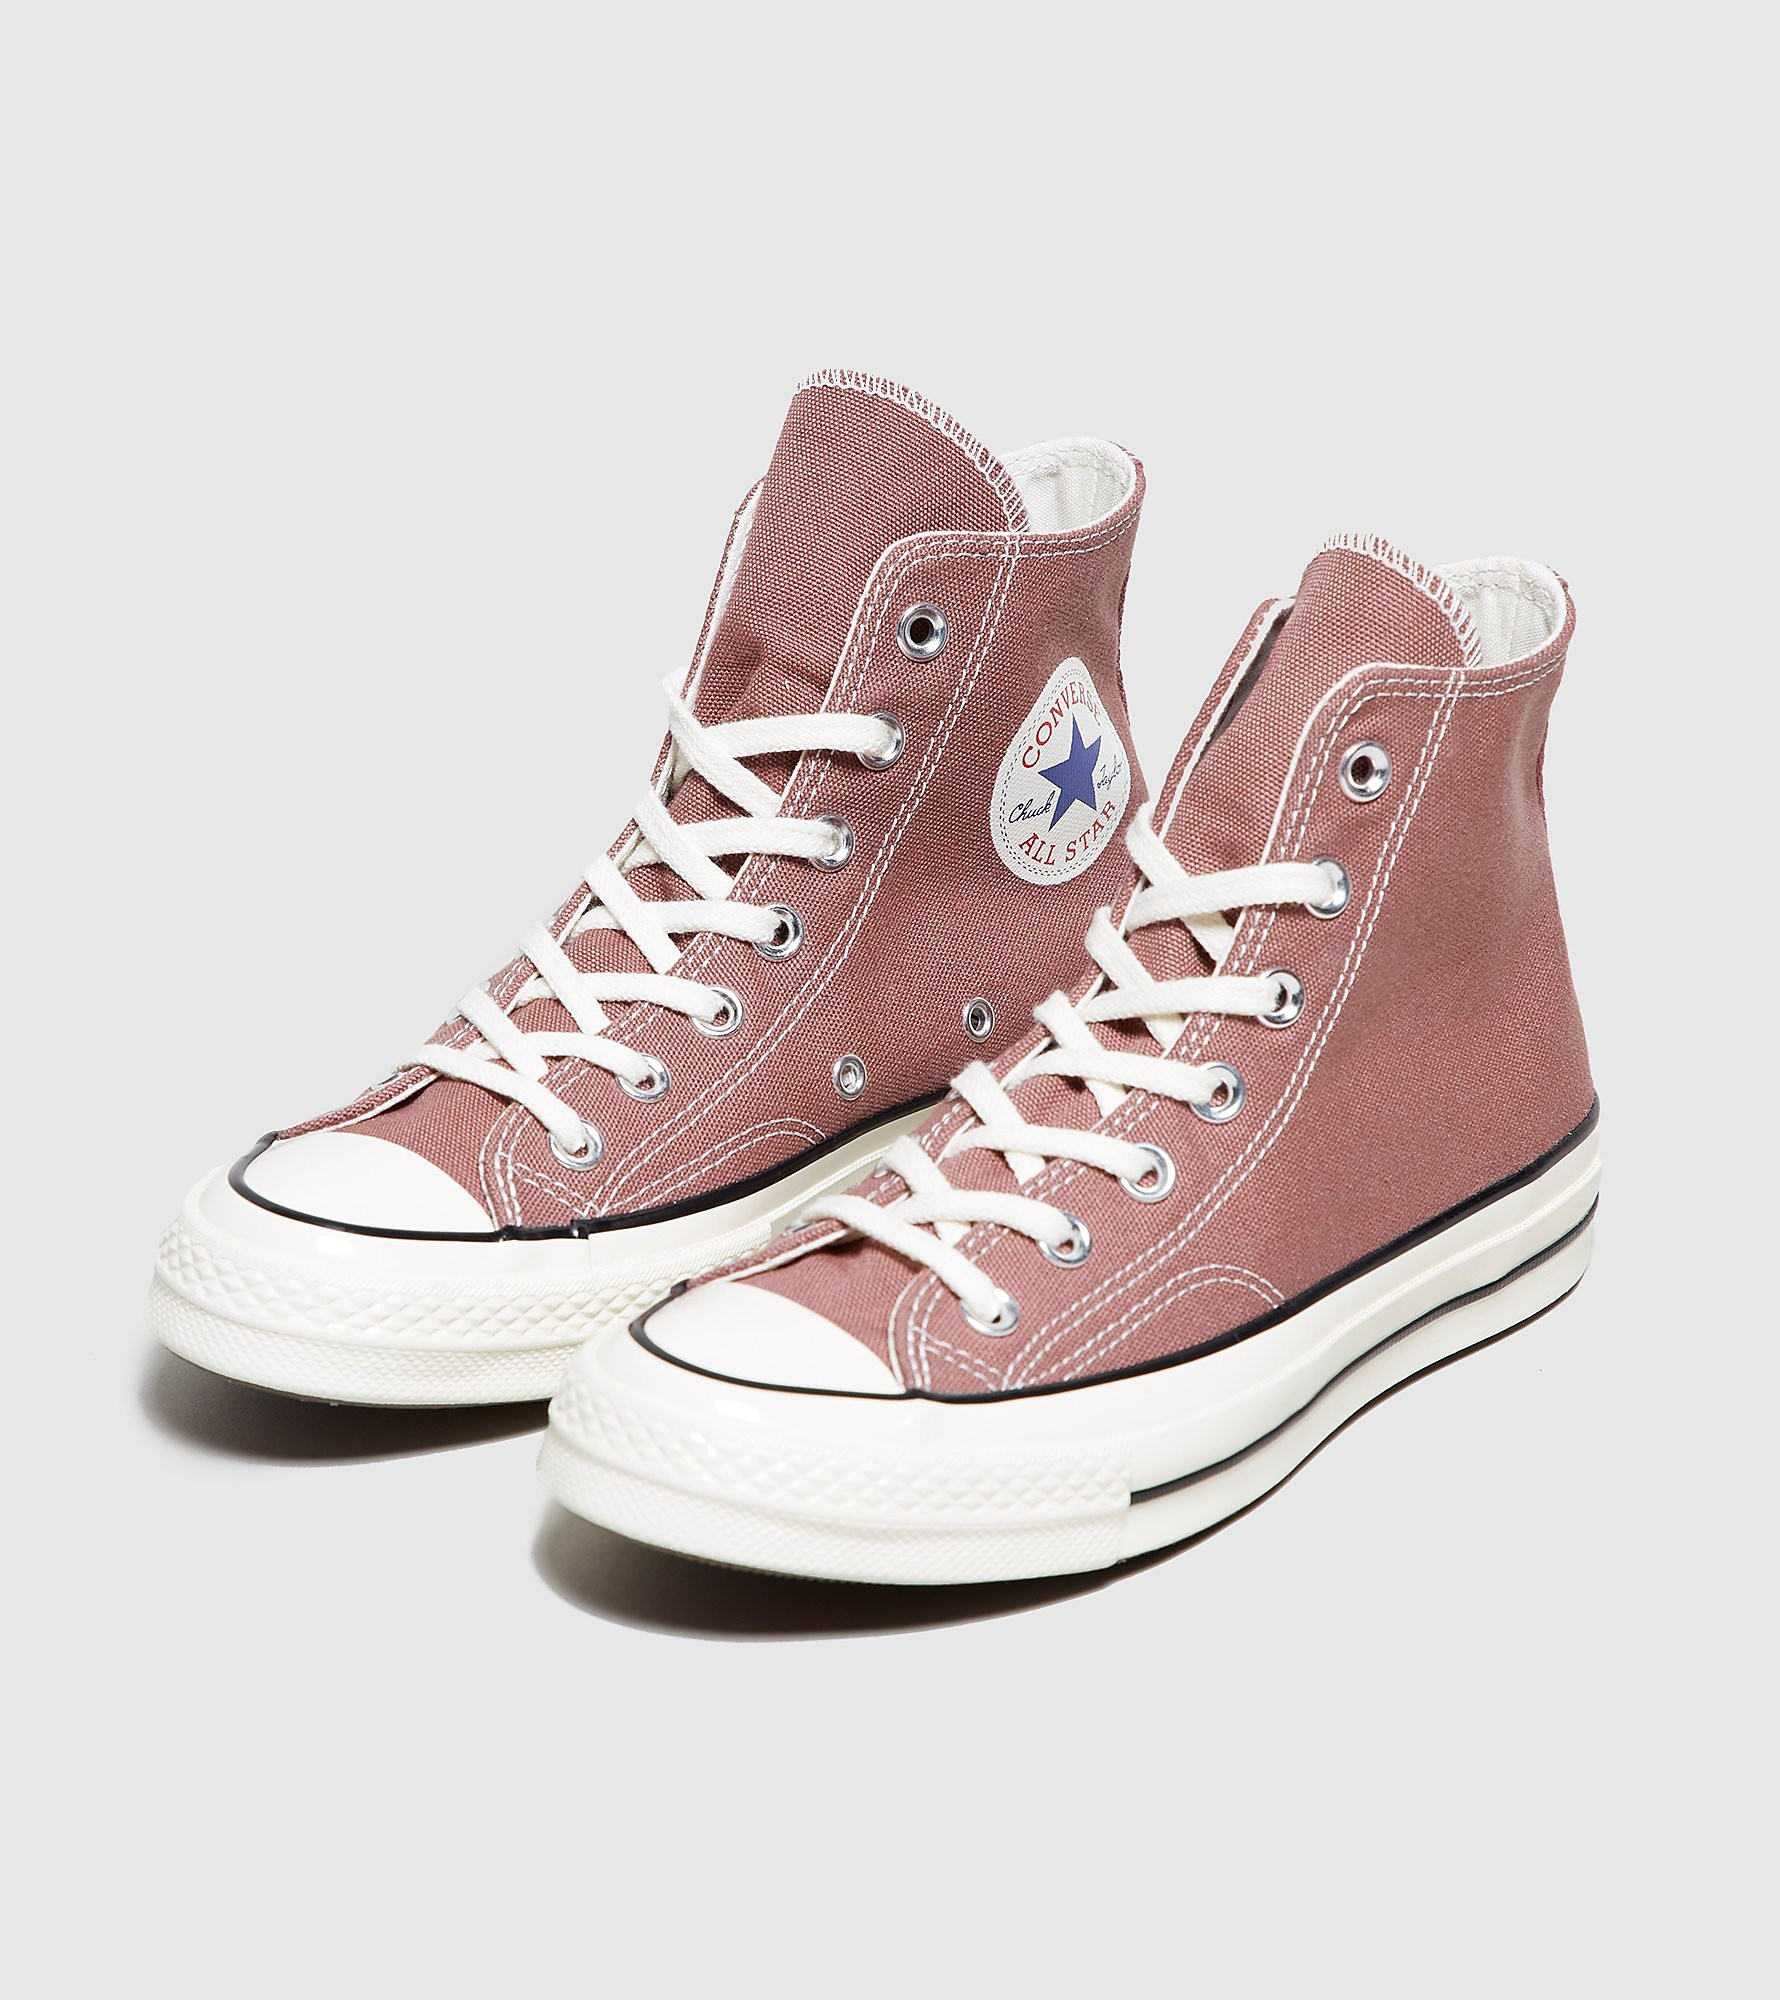 Converse Chuck Taylor All Star '70 Hi Women's